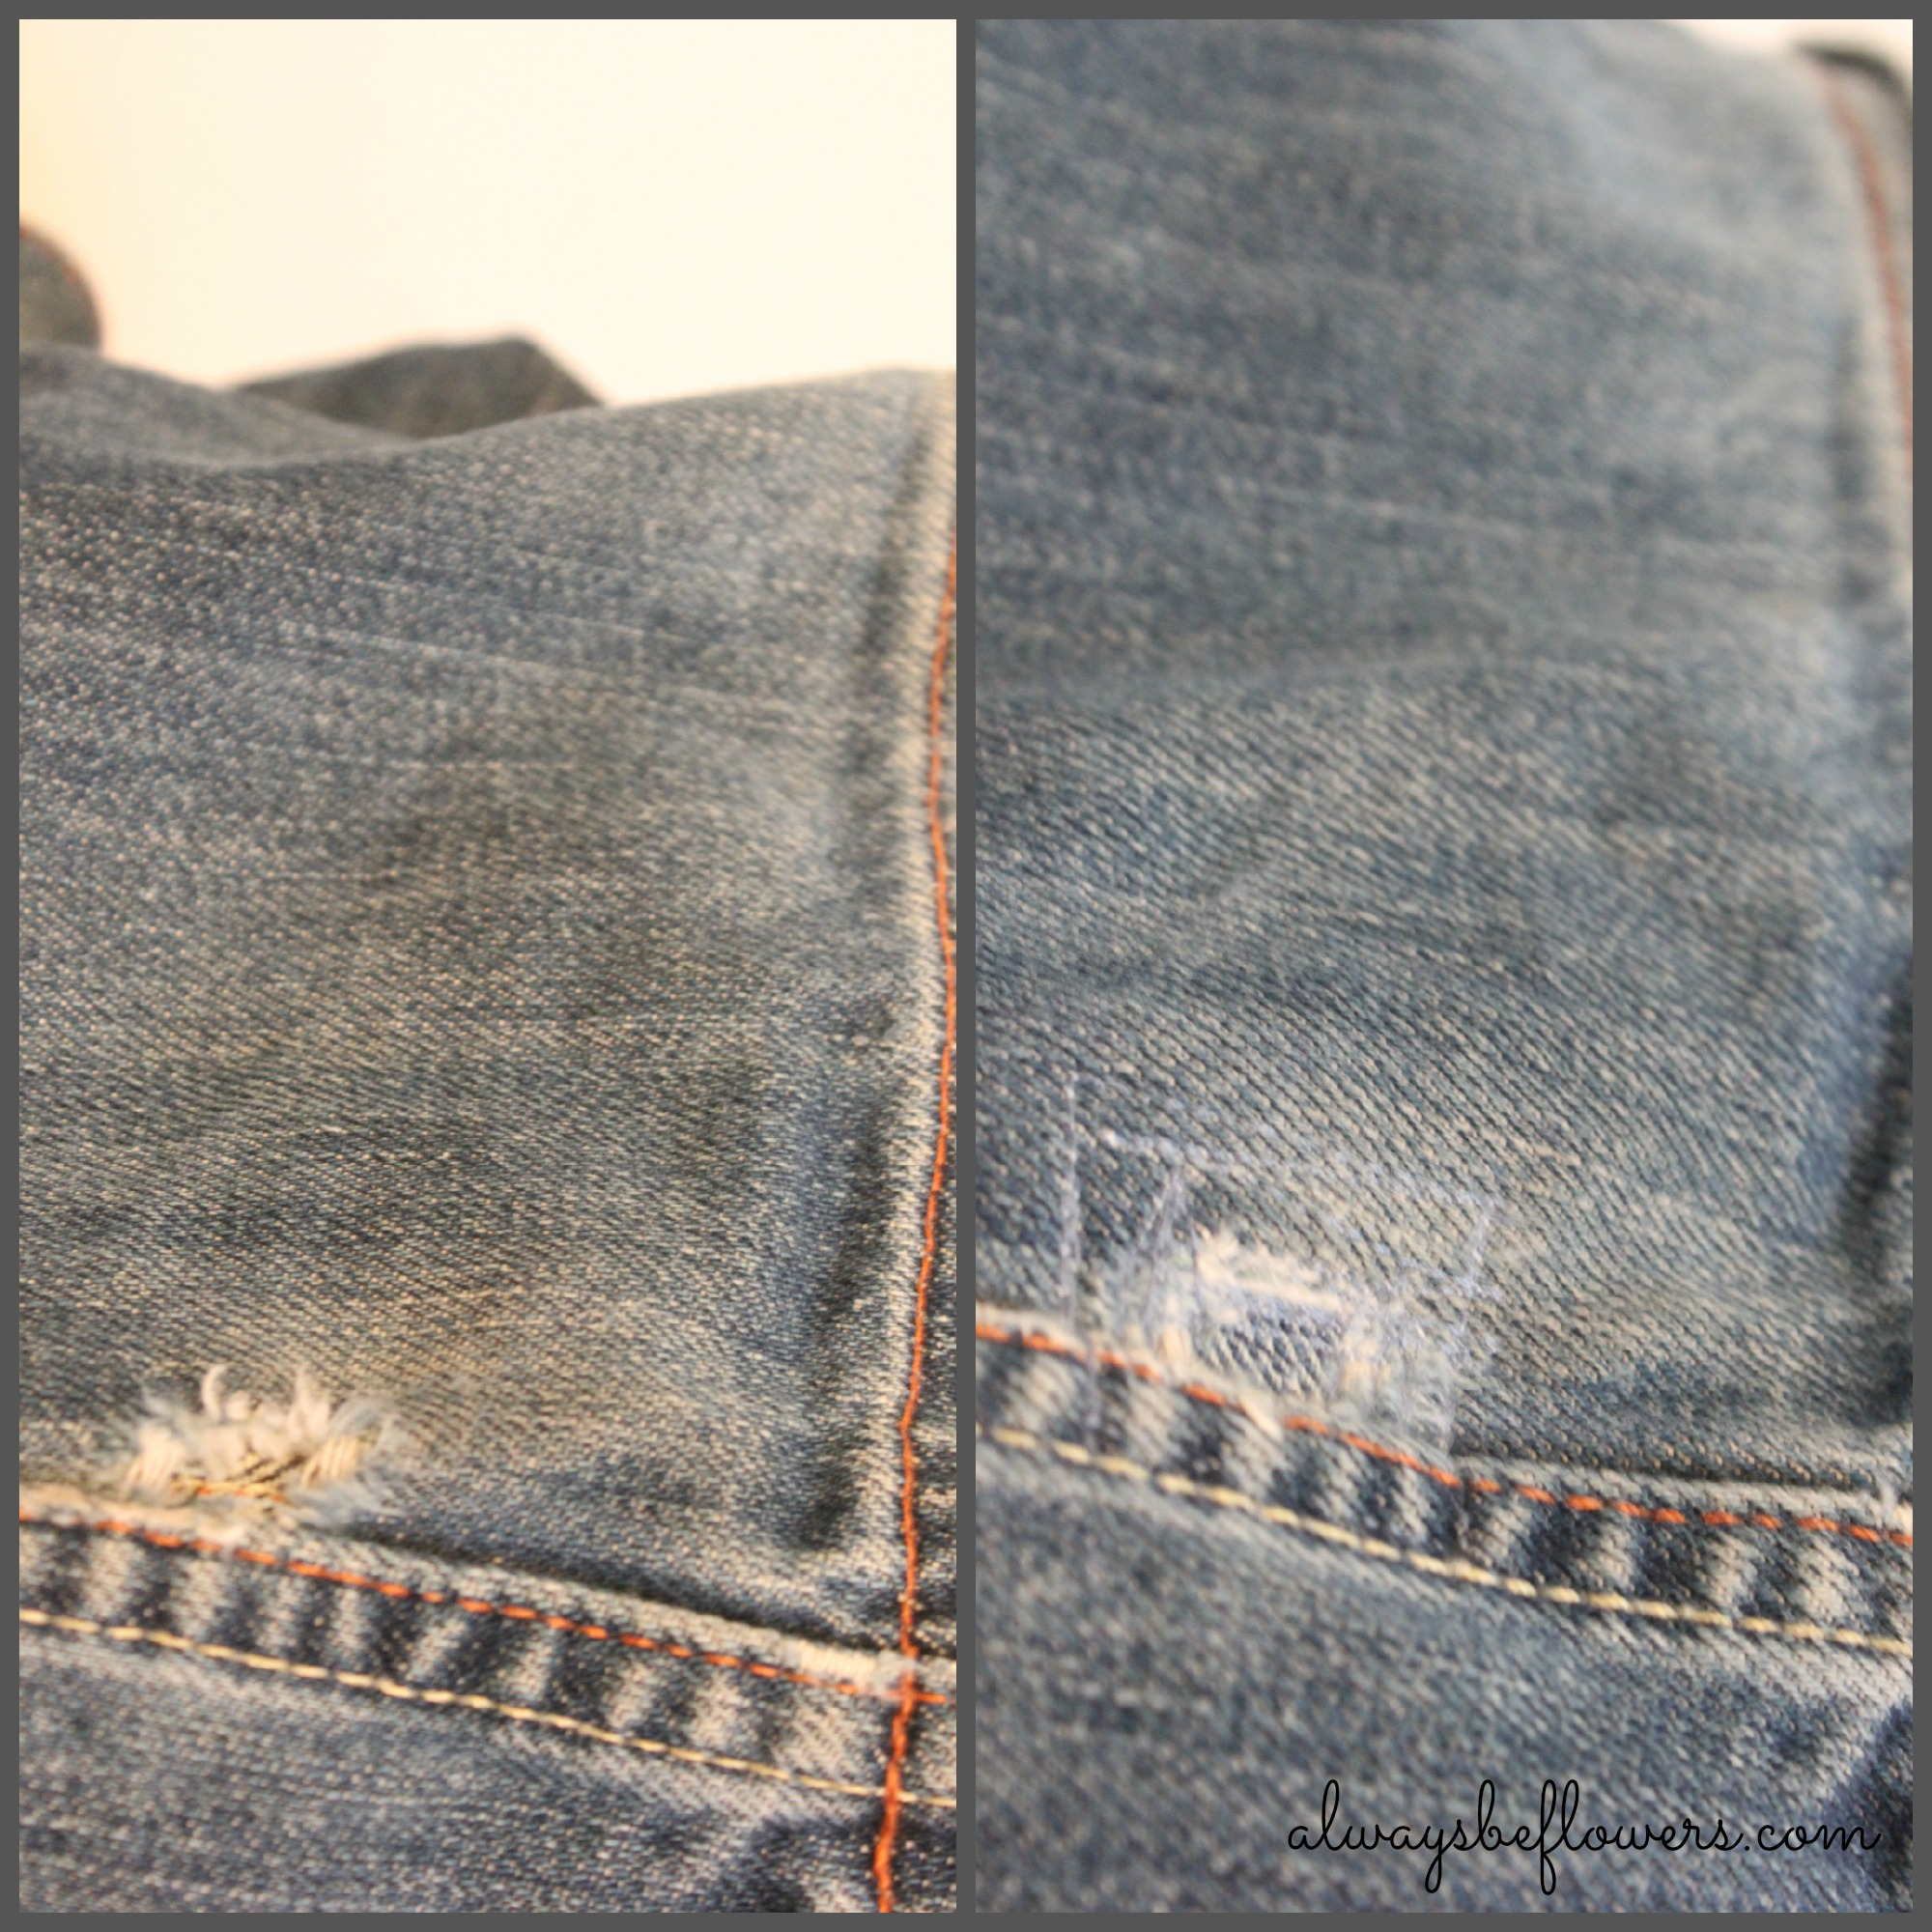 On left, a small hole. On right, the patched hole.